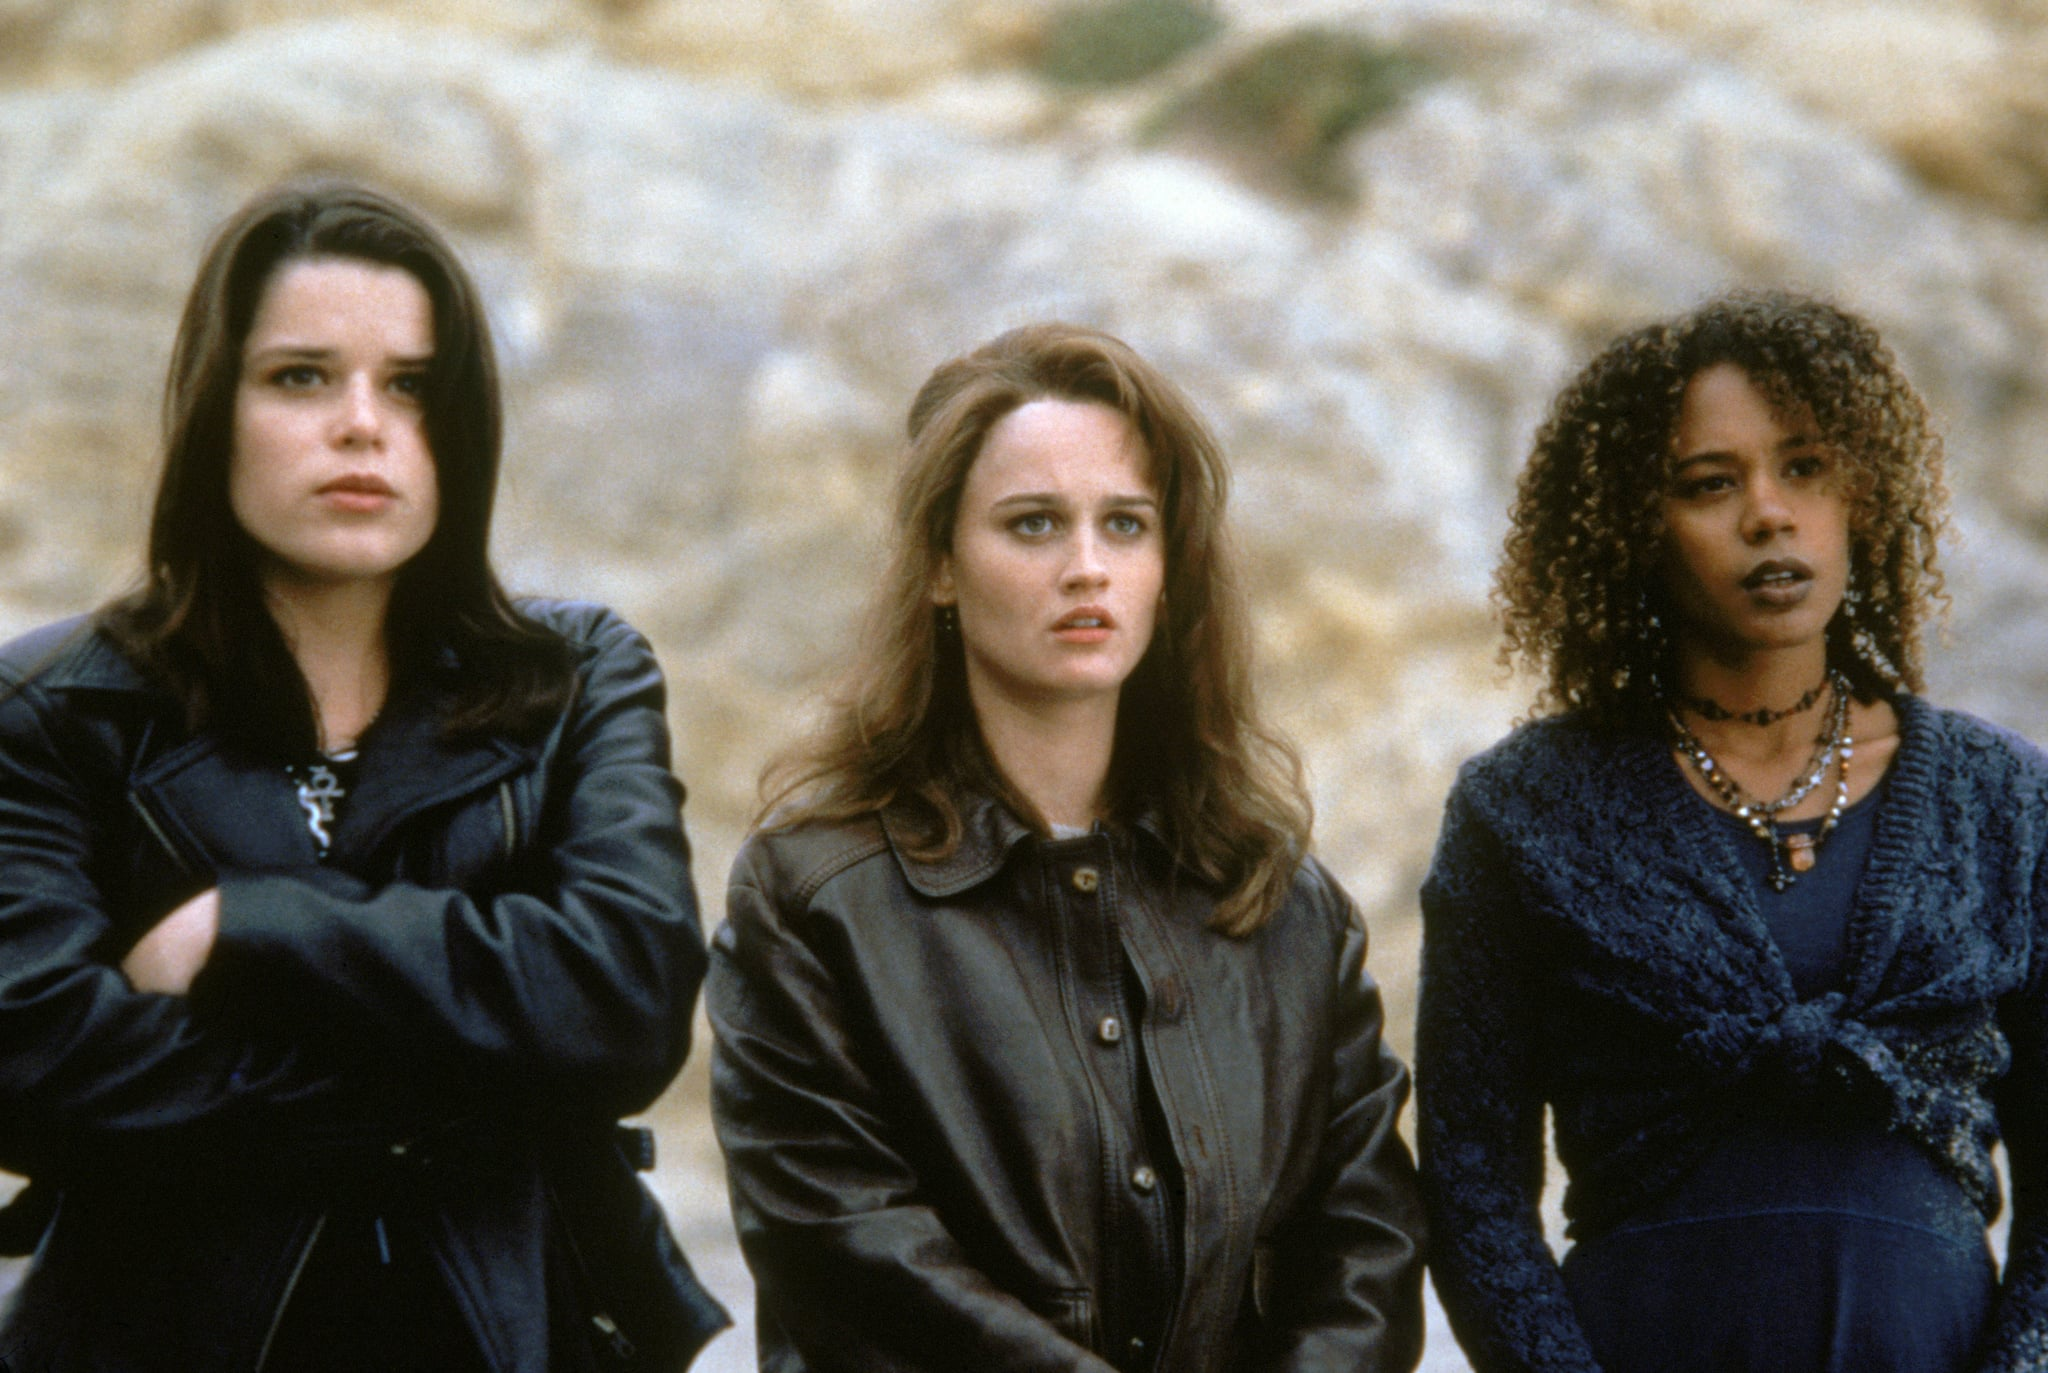 THE CRAFT, Neve Campbell, Robin Tunney, Rachel True, 1996, (c) Columbia/courtesy Everett Collection